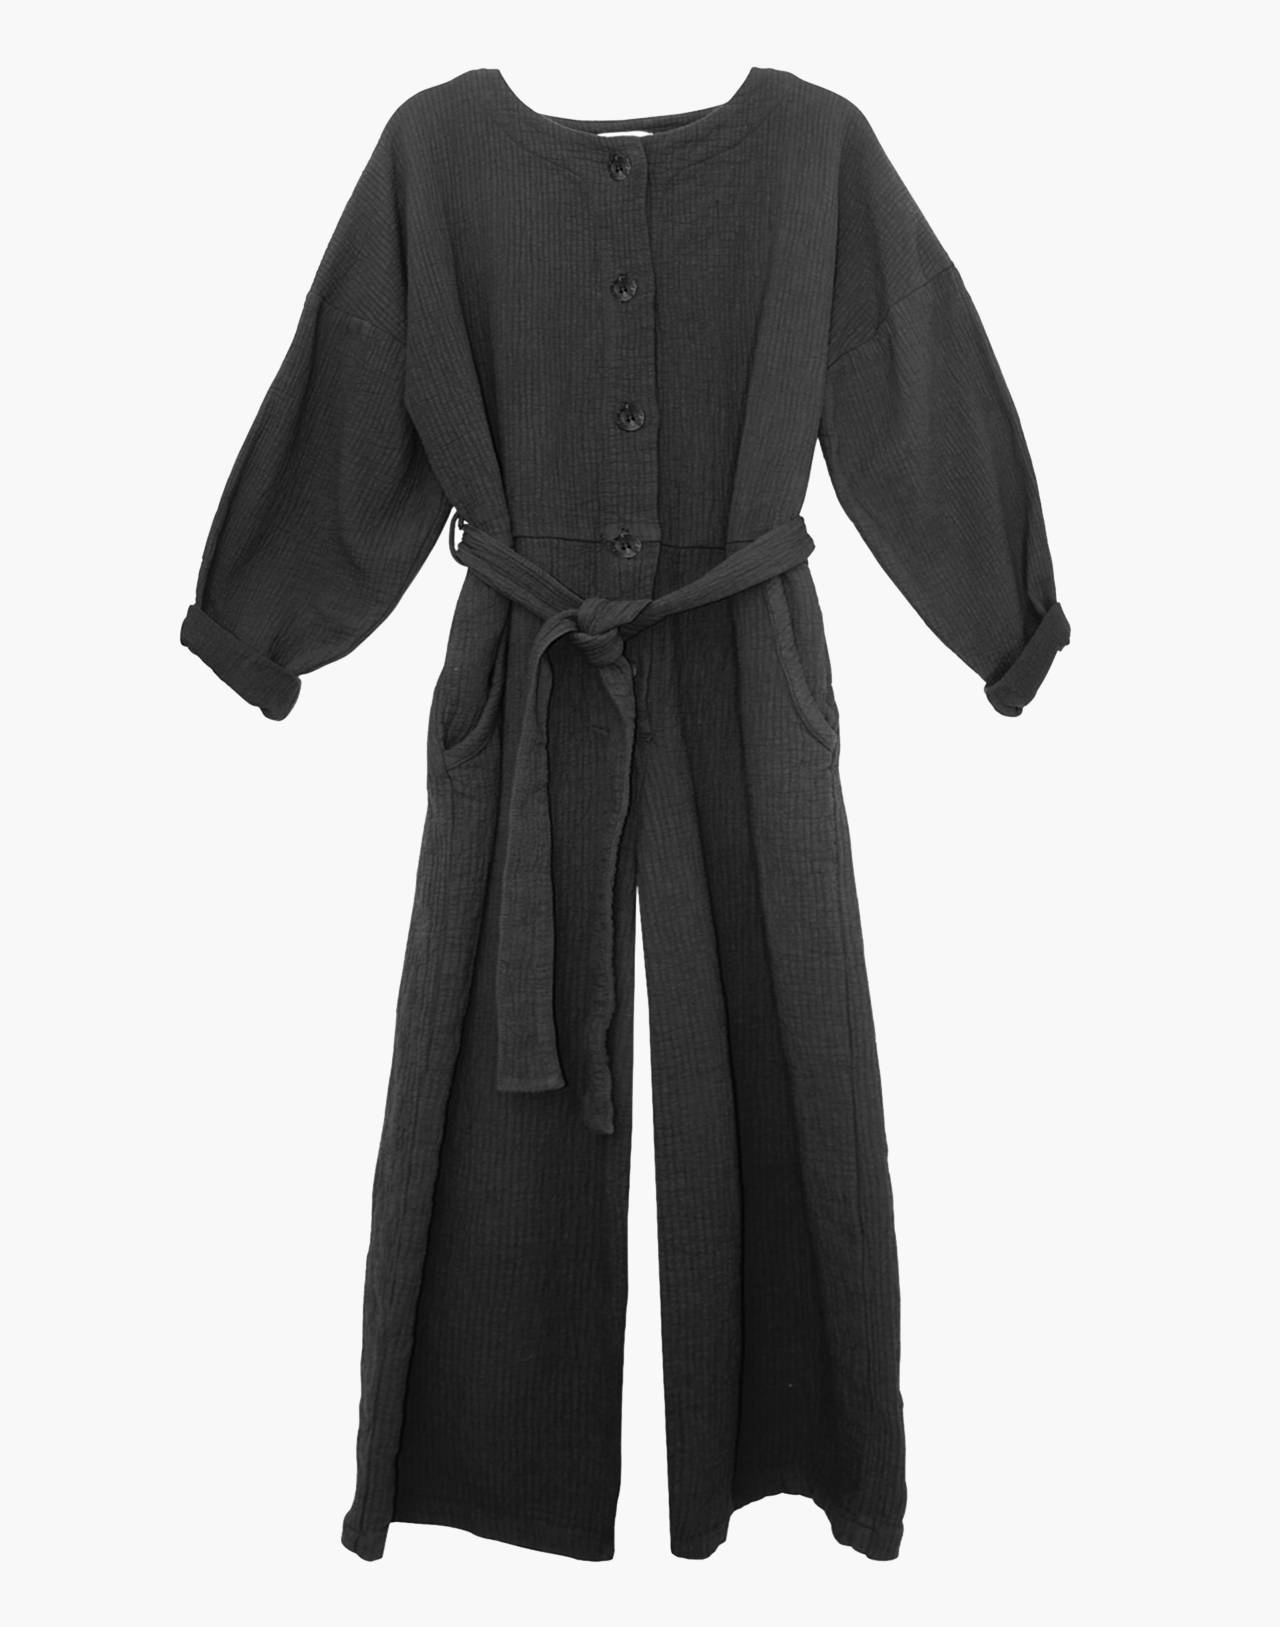 NICO NICO™ Johnson Quilted Jumpsuit in black image 1